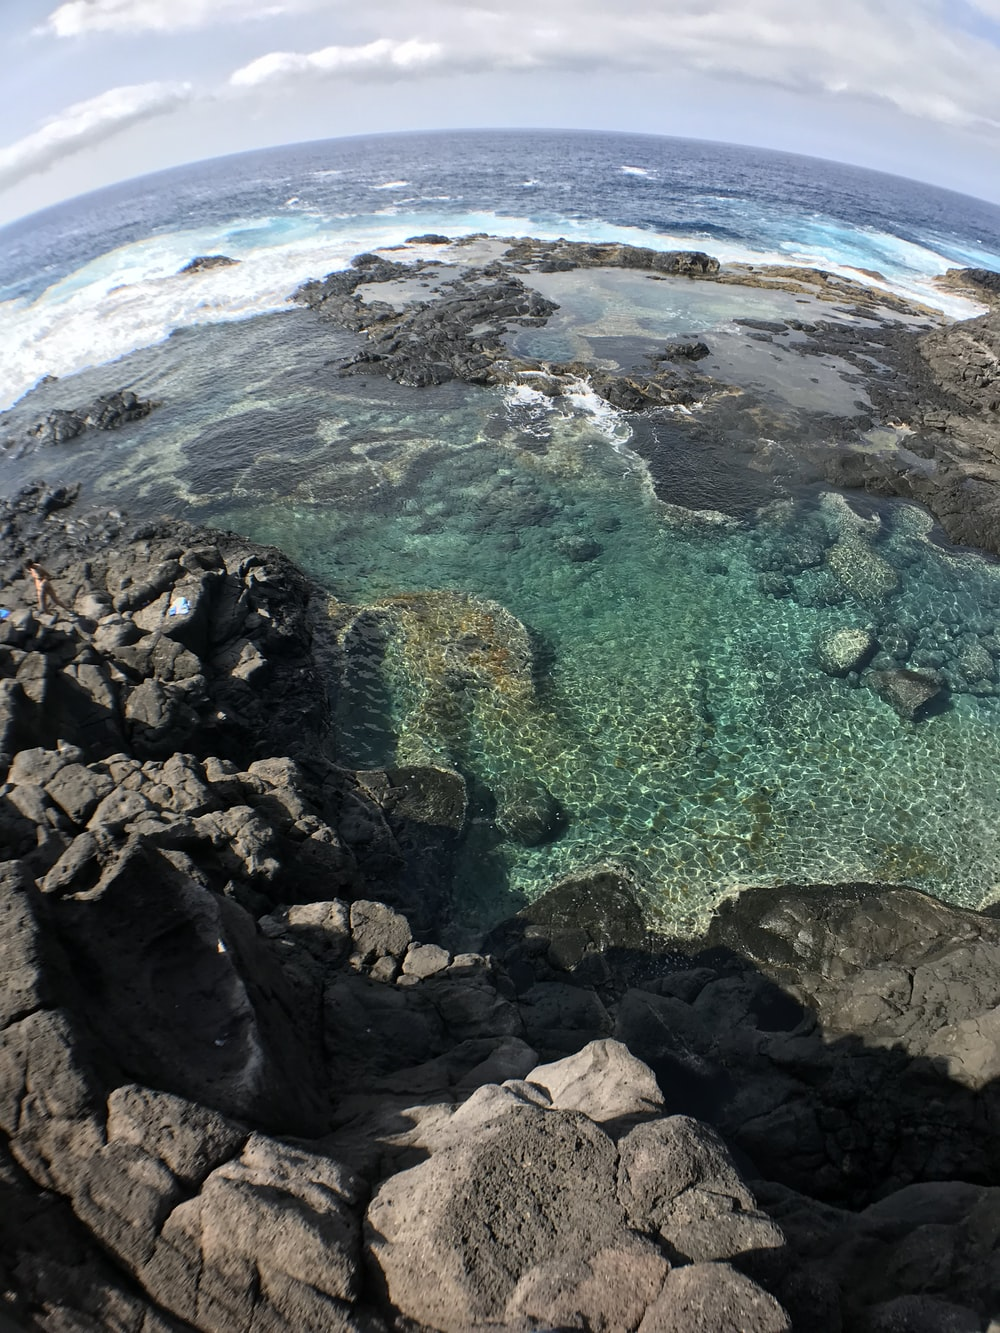 fish-eye photography of body of water